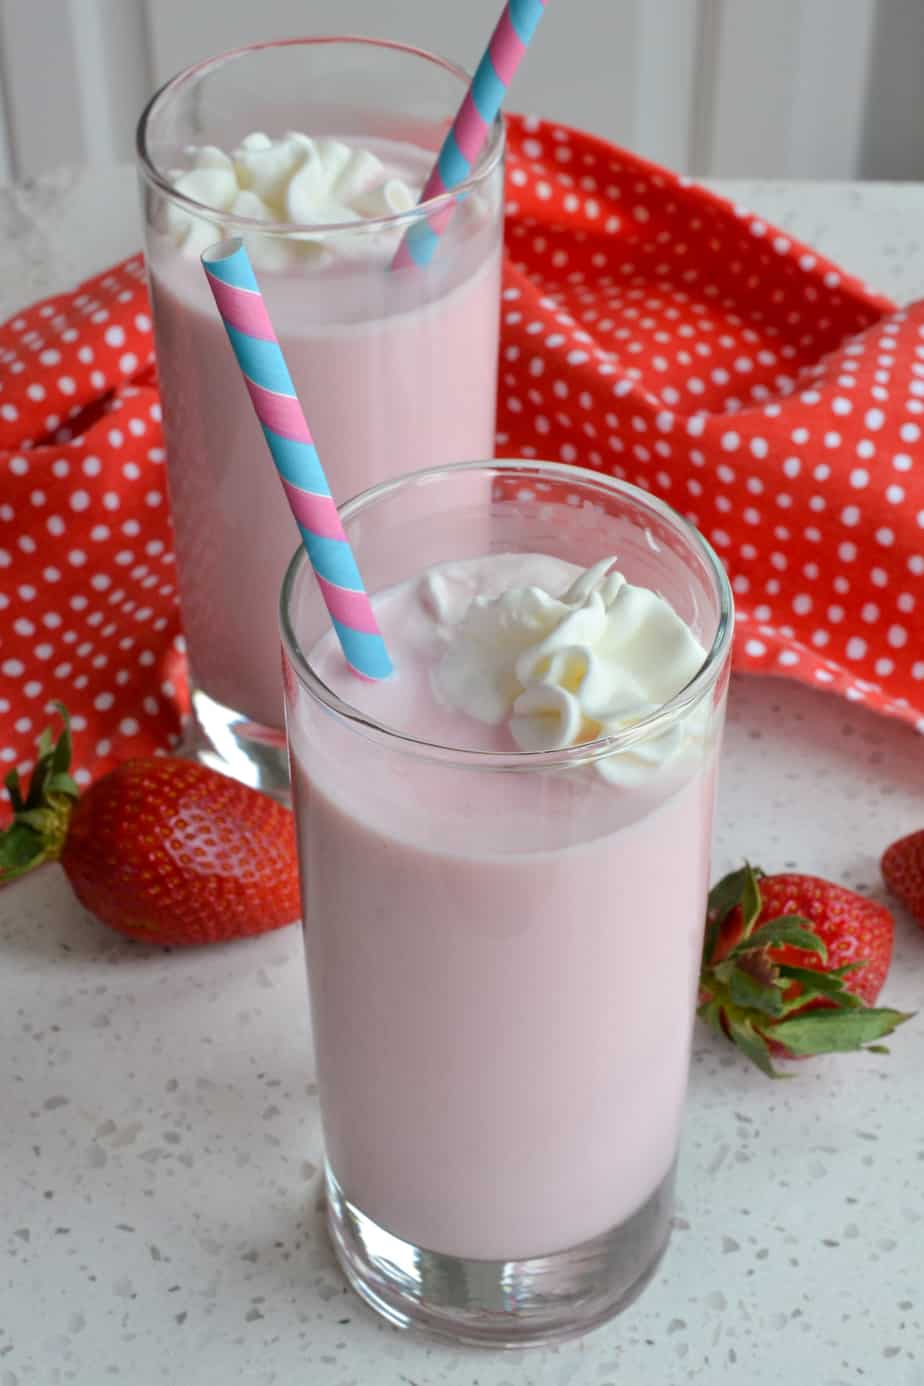 Creamy cows milk combined with sweet strawberry syrup.